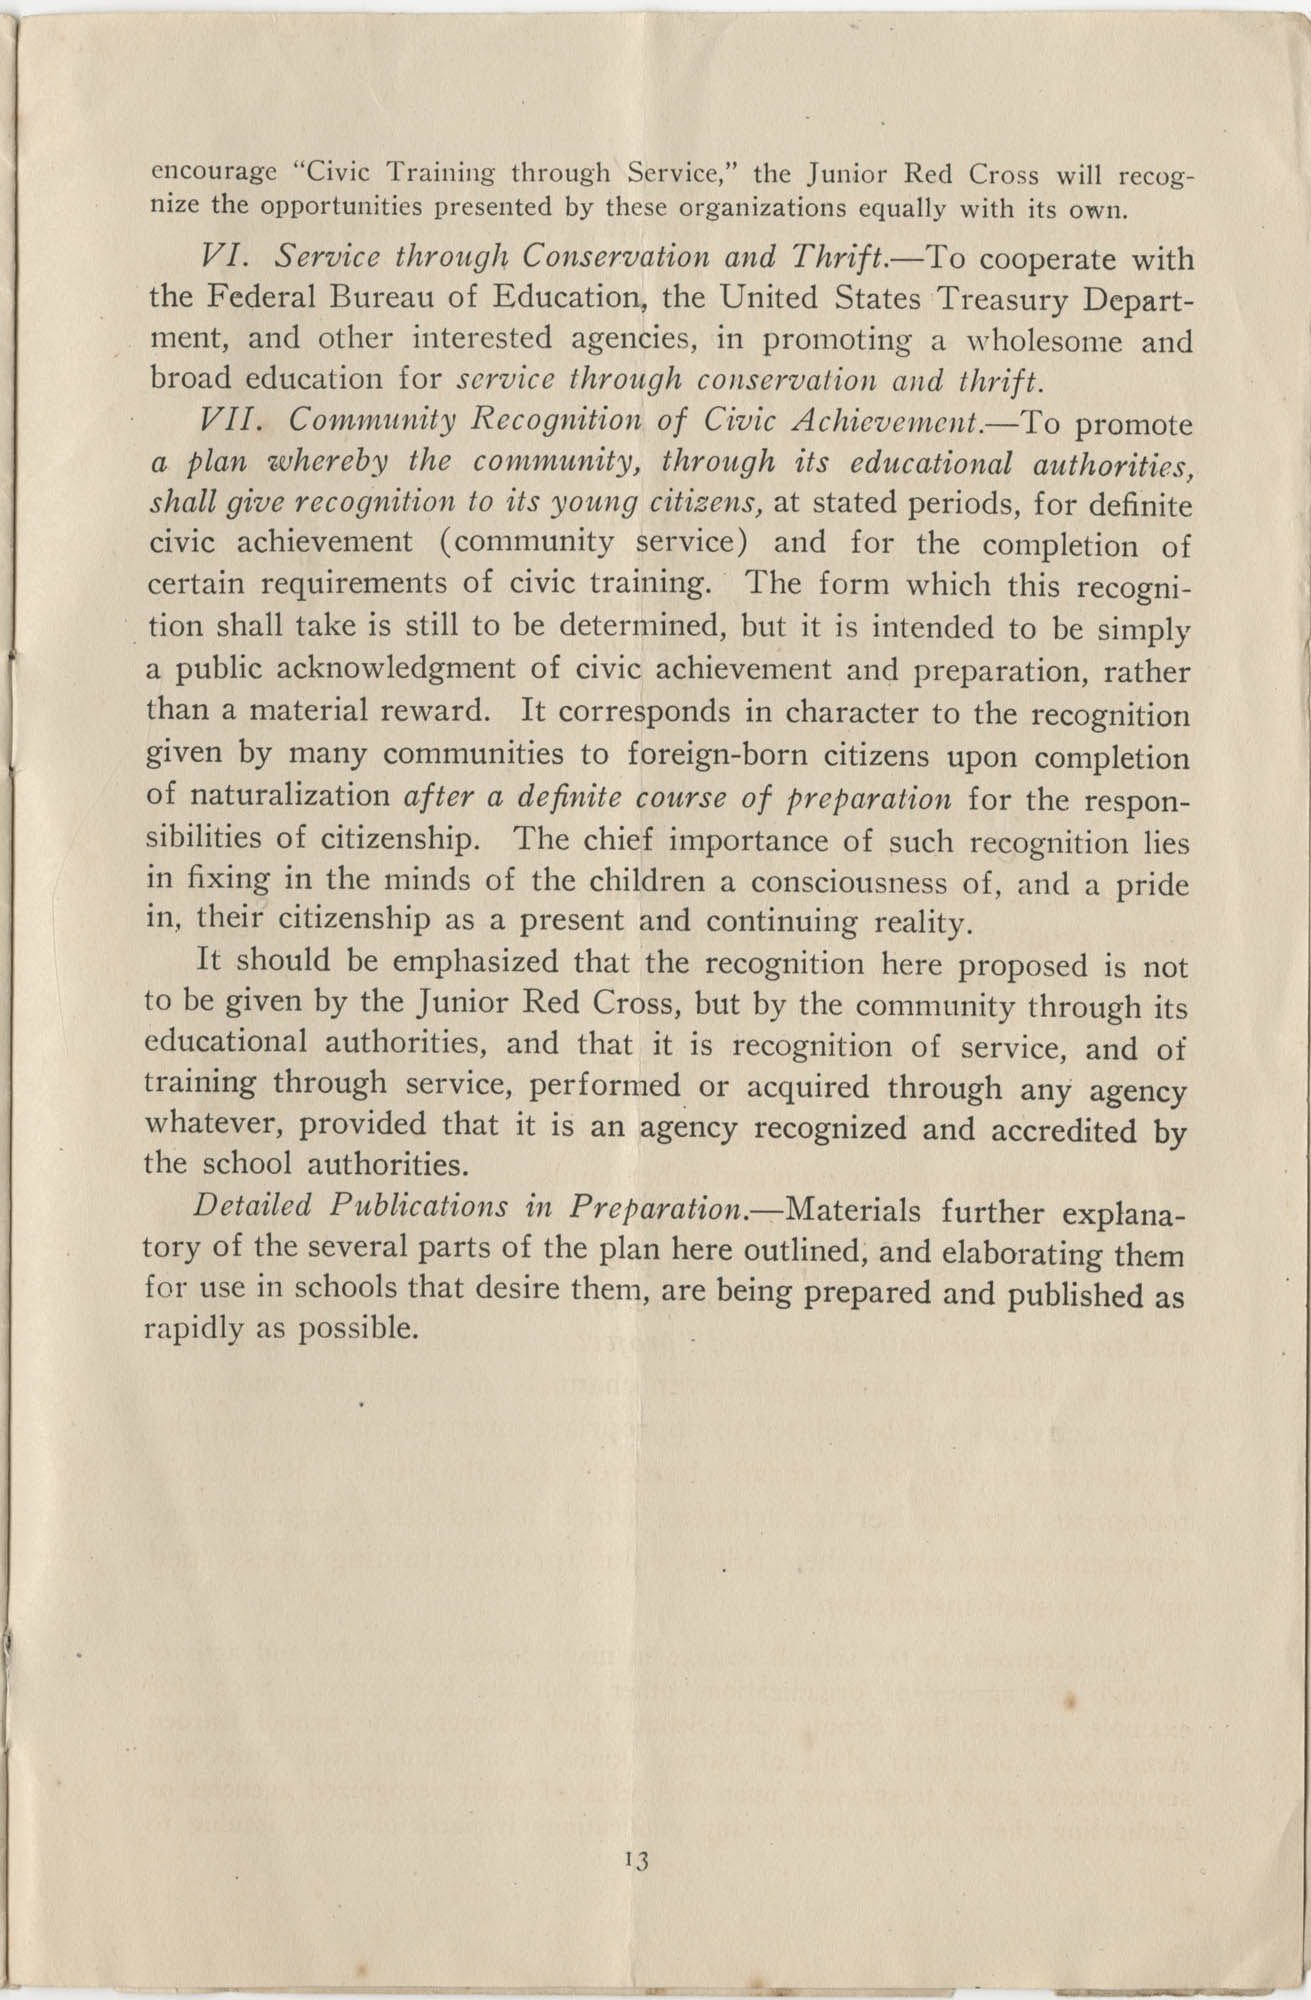 Civic Training Through Service, Department of the Interior, Bureau of Education, June 1920, Page 13